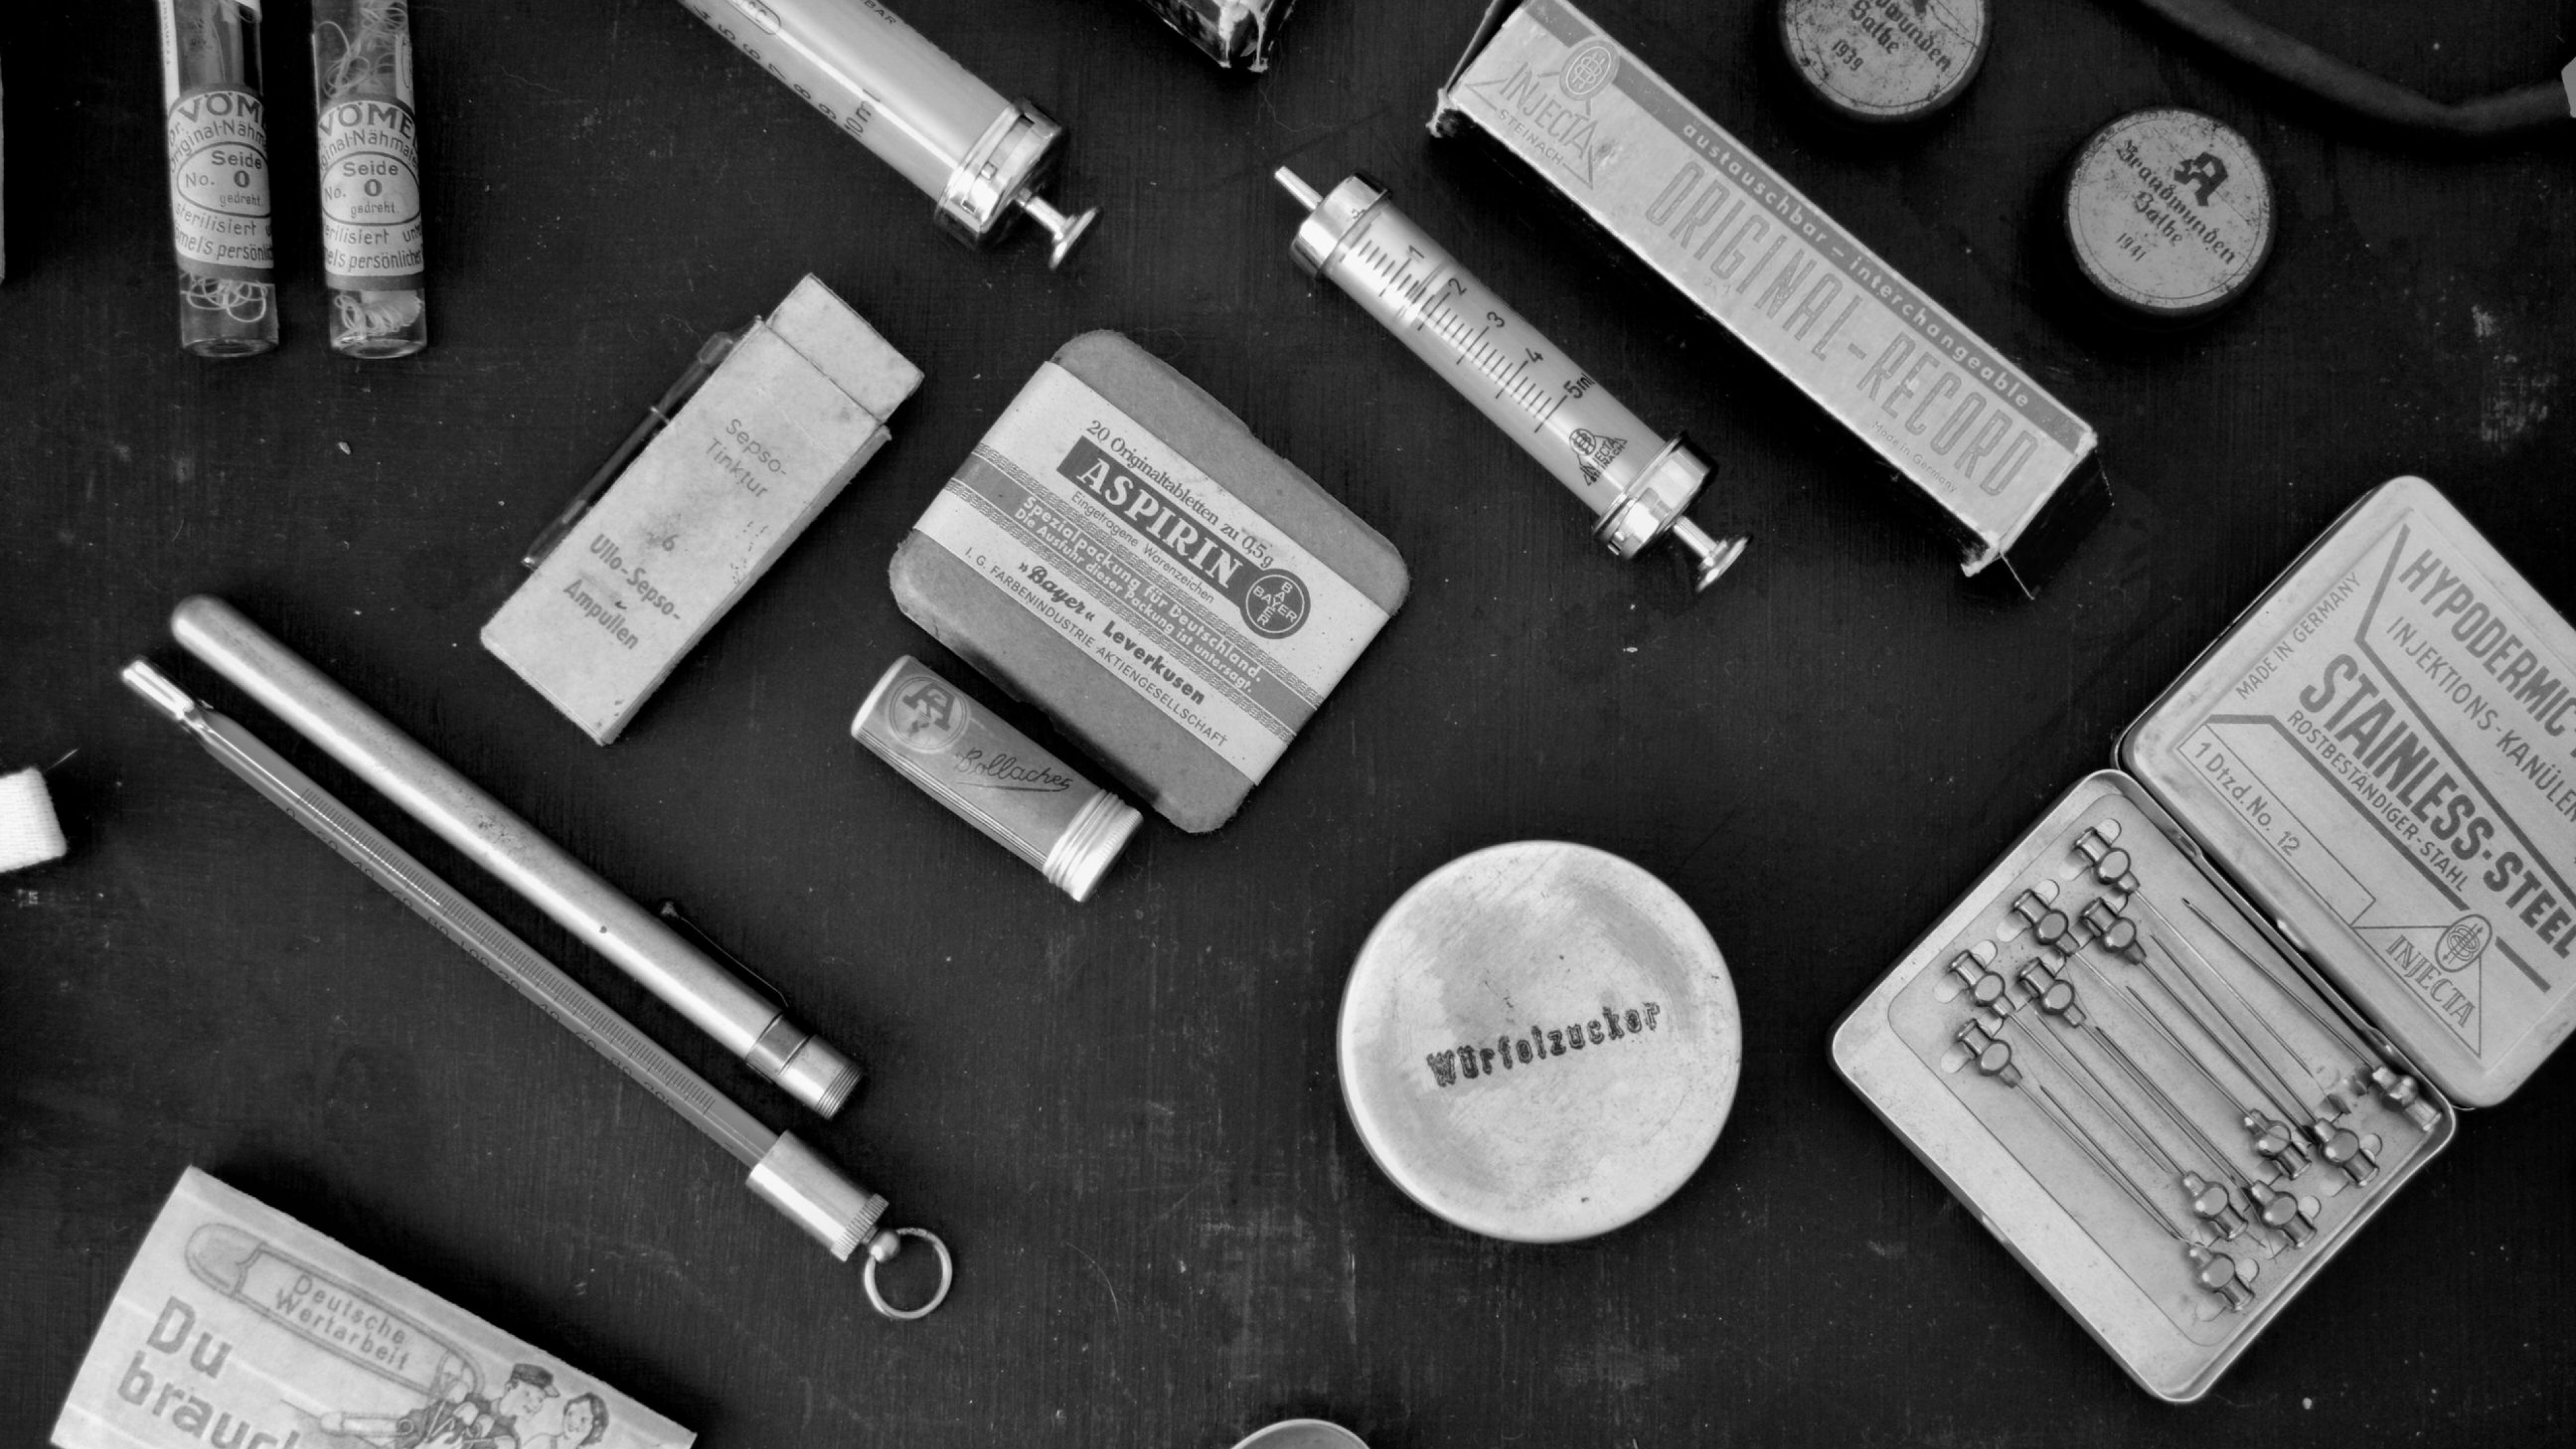 Black and white photo of old medical devices